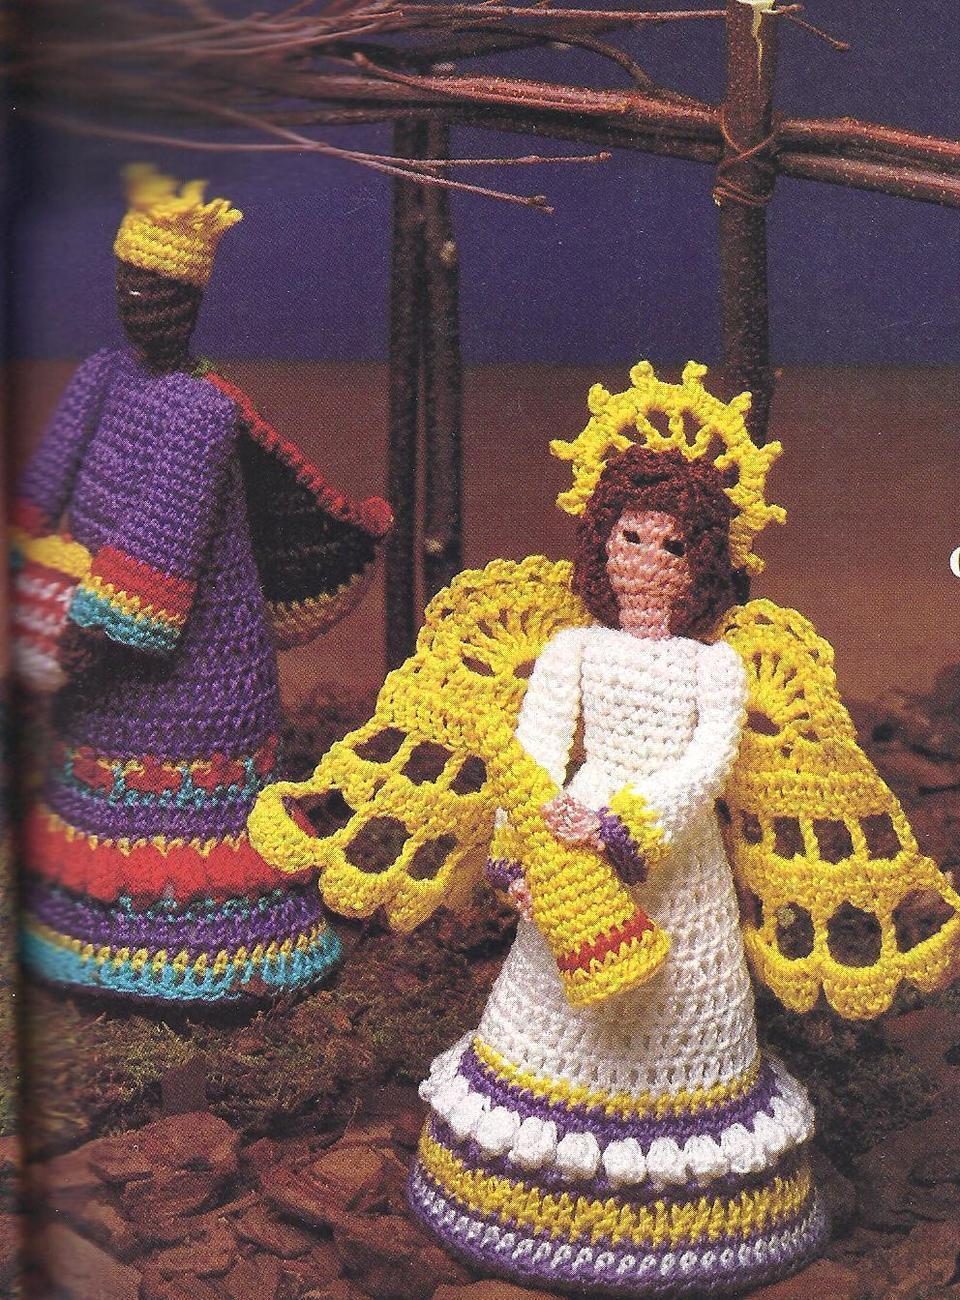 Crochet Patterns Nativity Scene : NATIVITY CROCHET PATTERN ? Crochet For Beginners